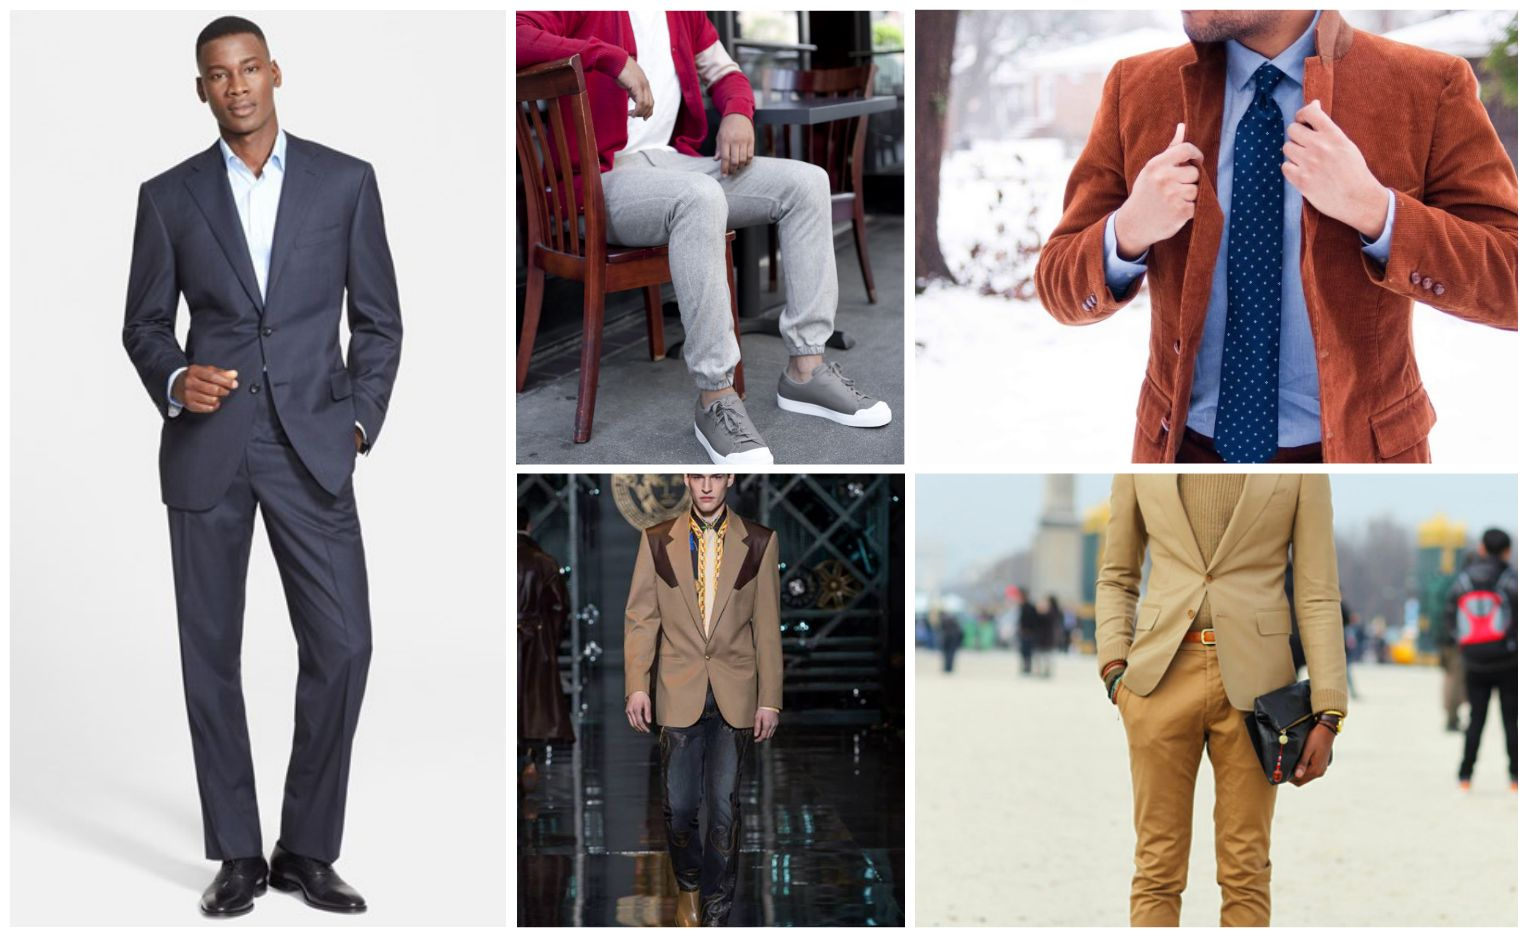 5 Men's Fashion Trends for Fall 2014